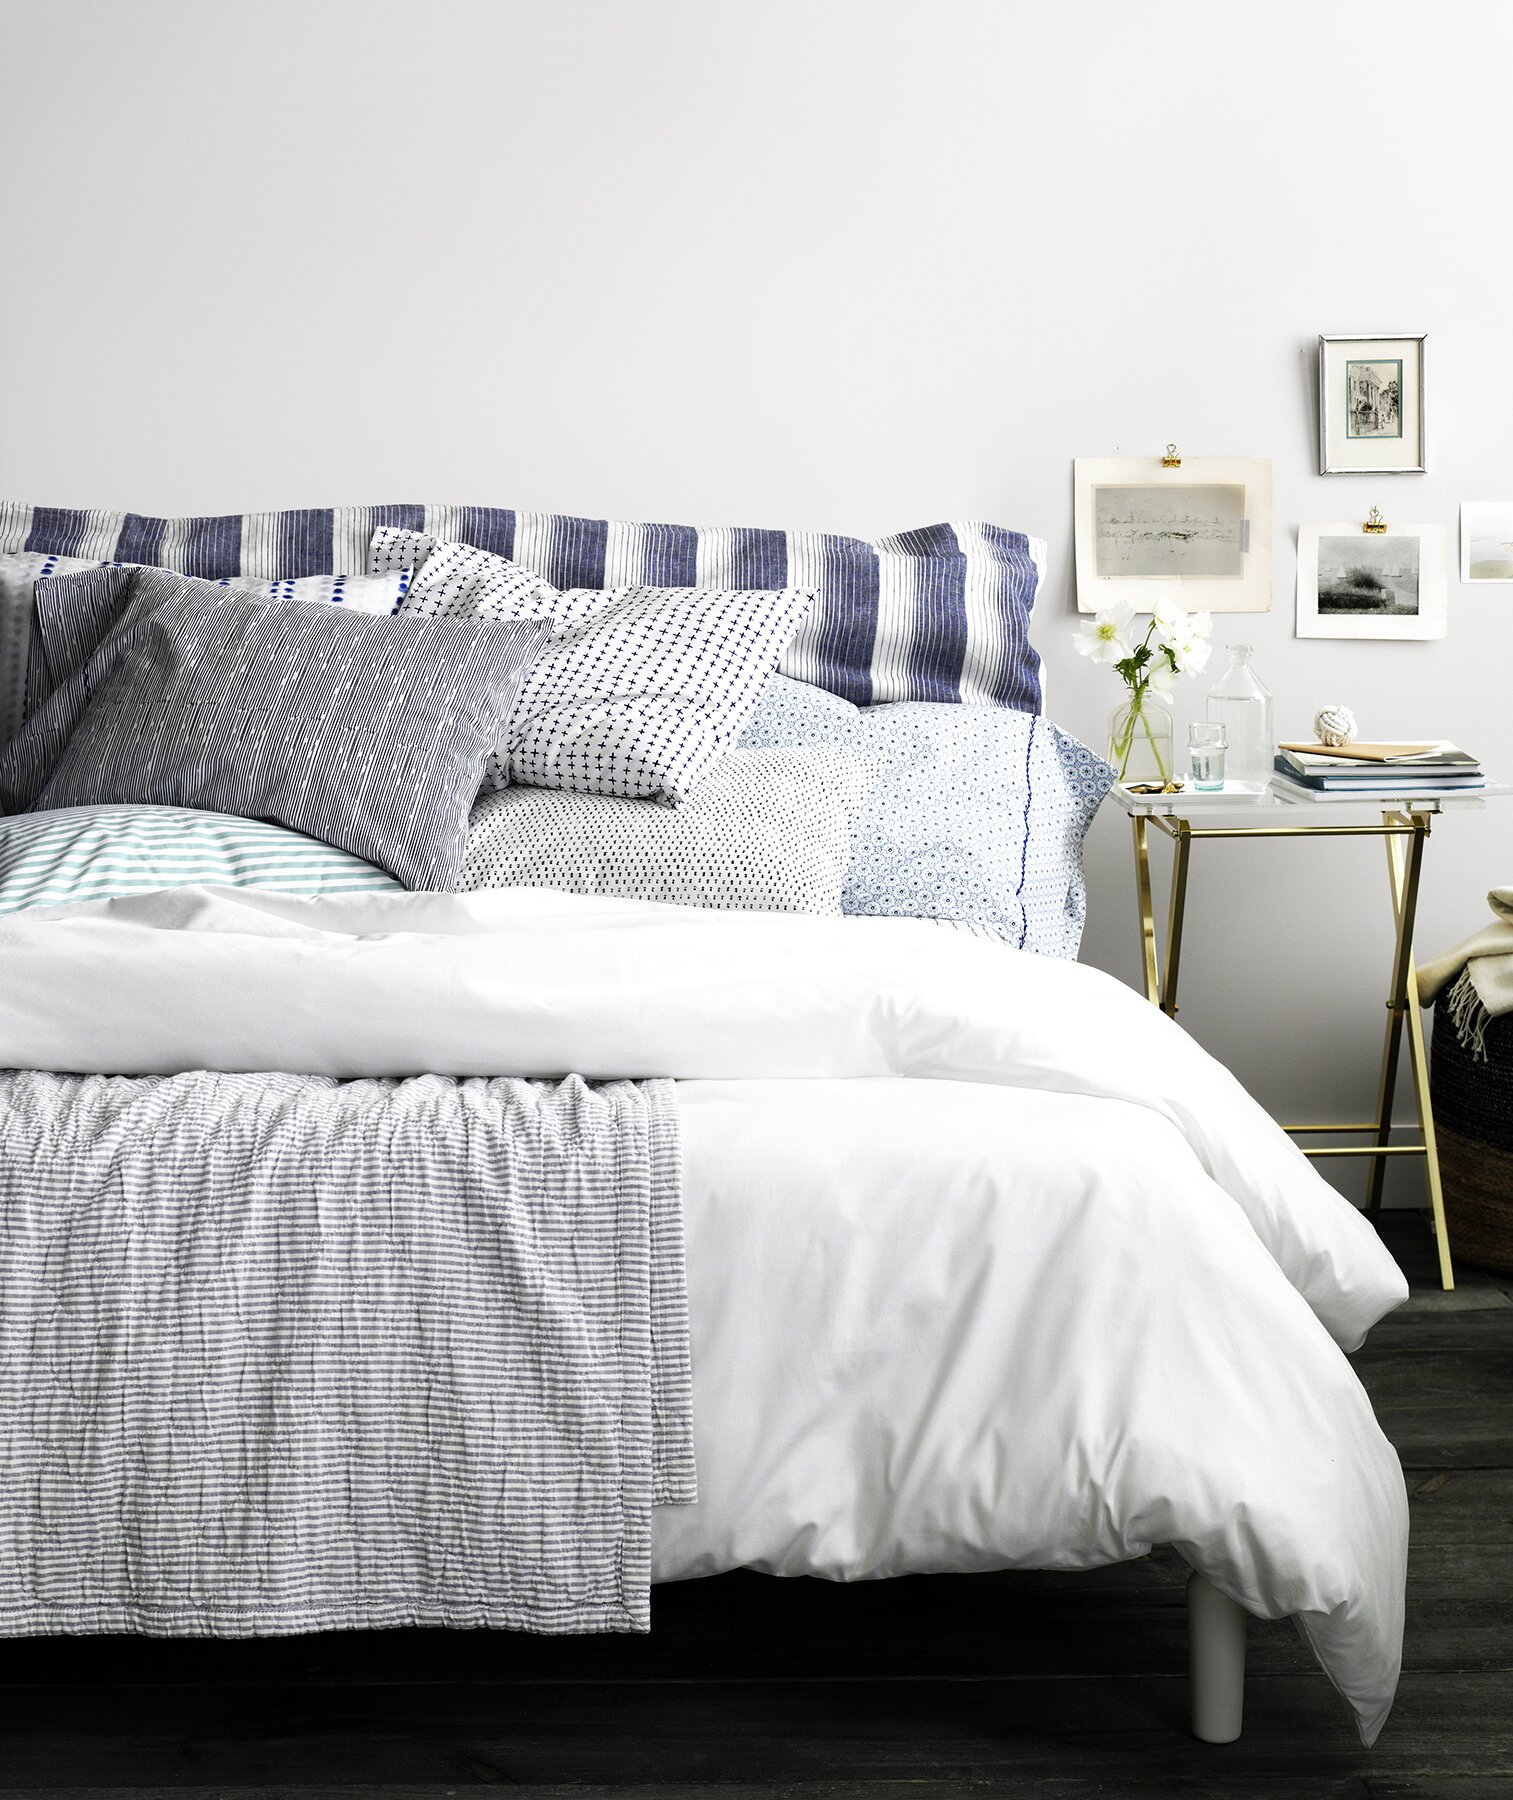 20 Decorating Tricks For Your Bedroom